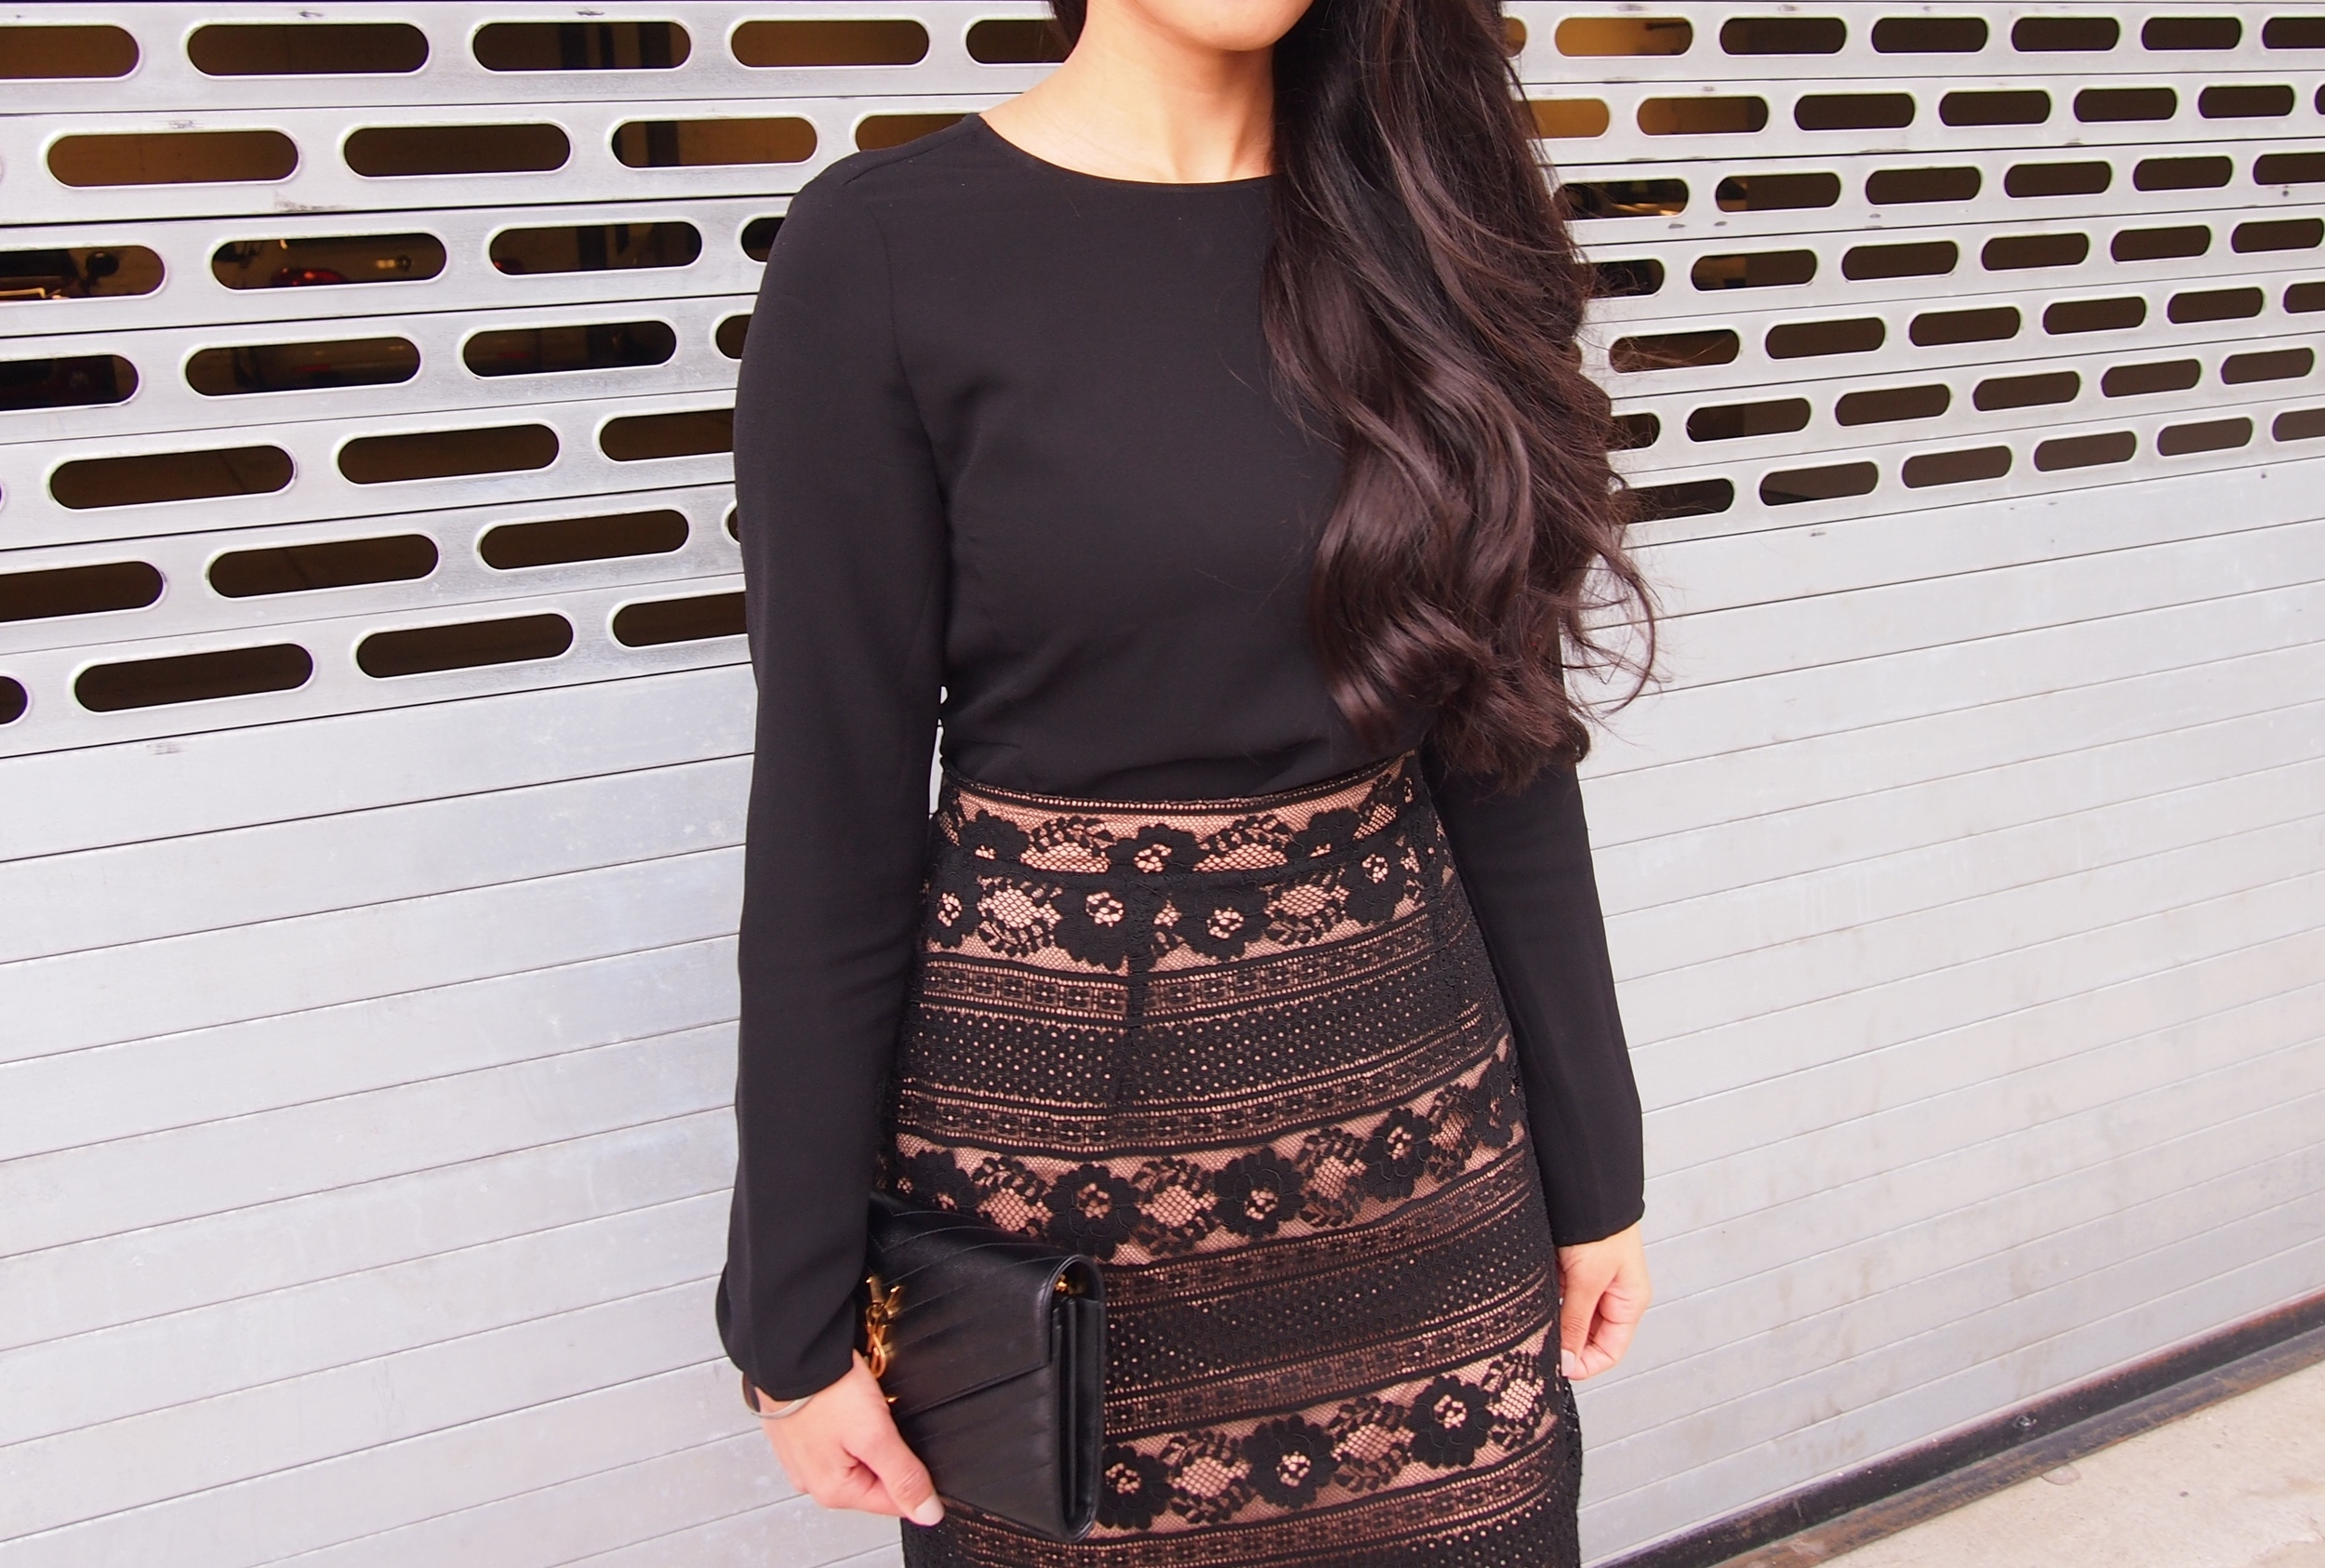 H&M Lace Skirt and Curly Hair